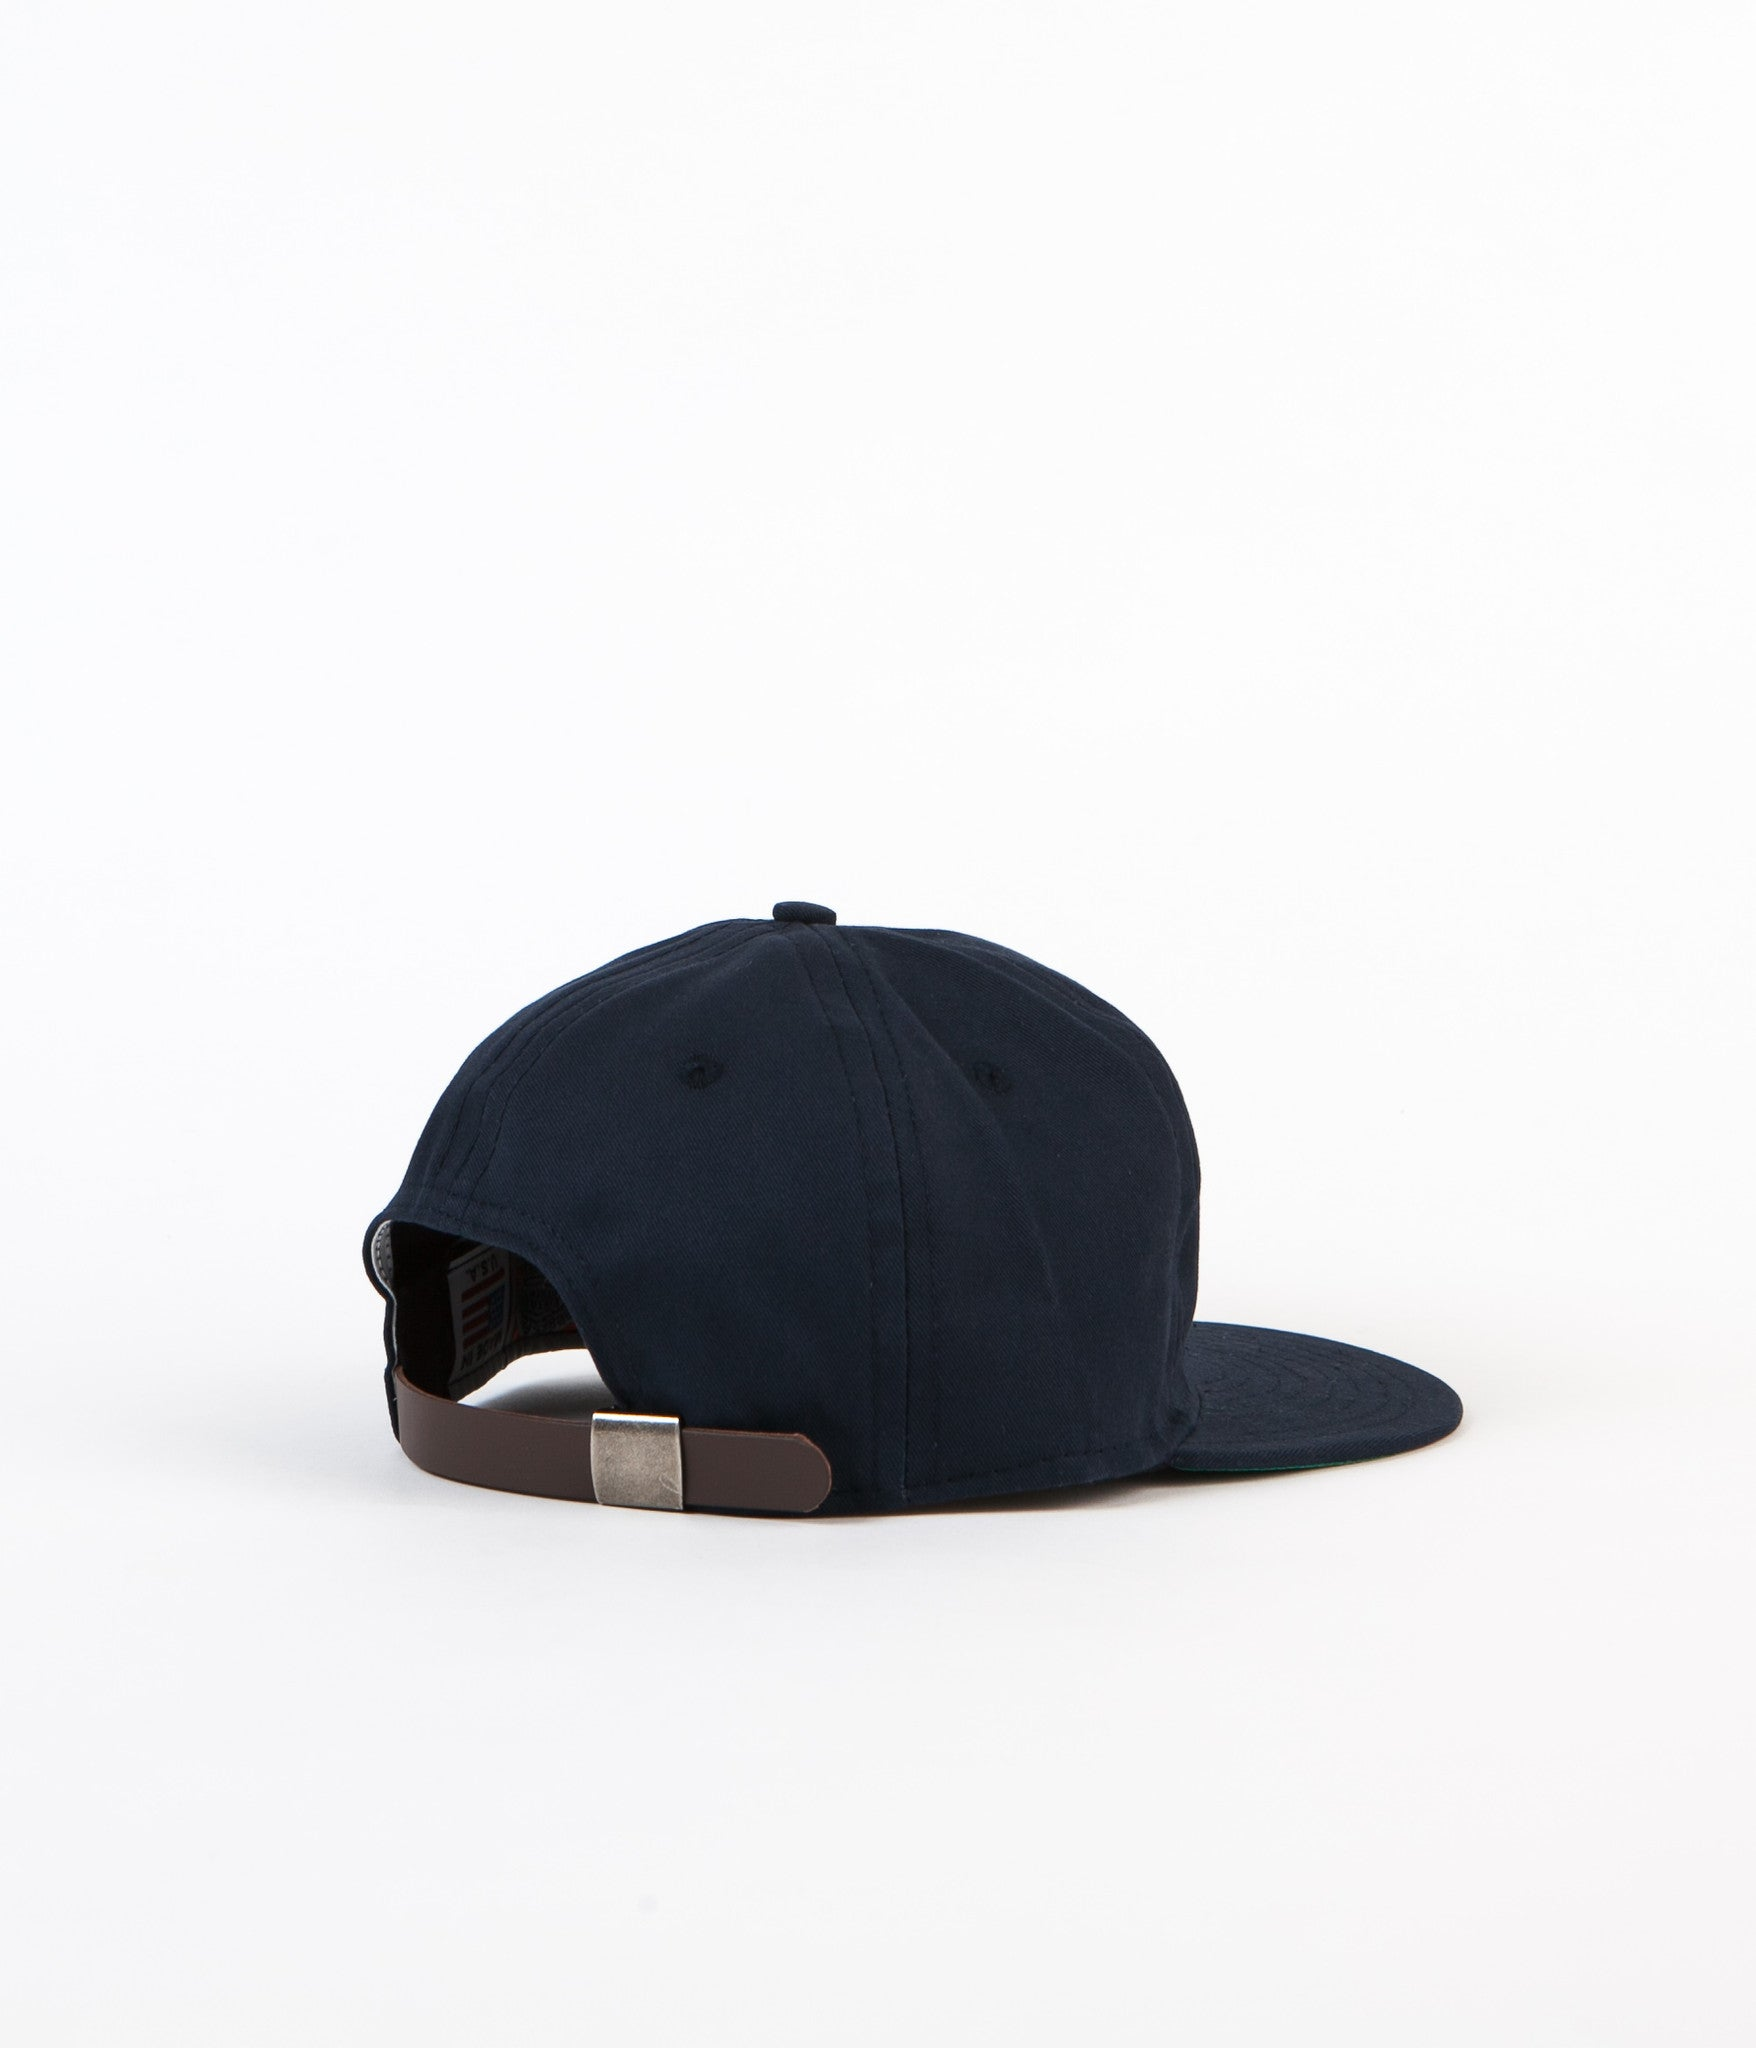 Ebbets Field Flannels Brushed Chino Twill 6 Panel Cap - Navy